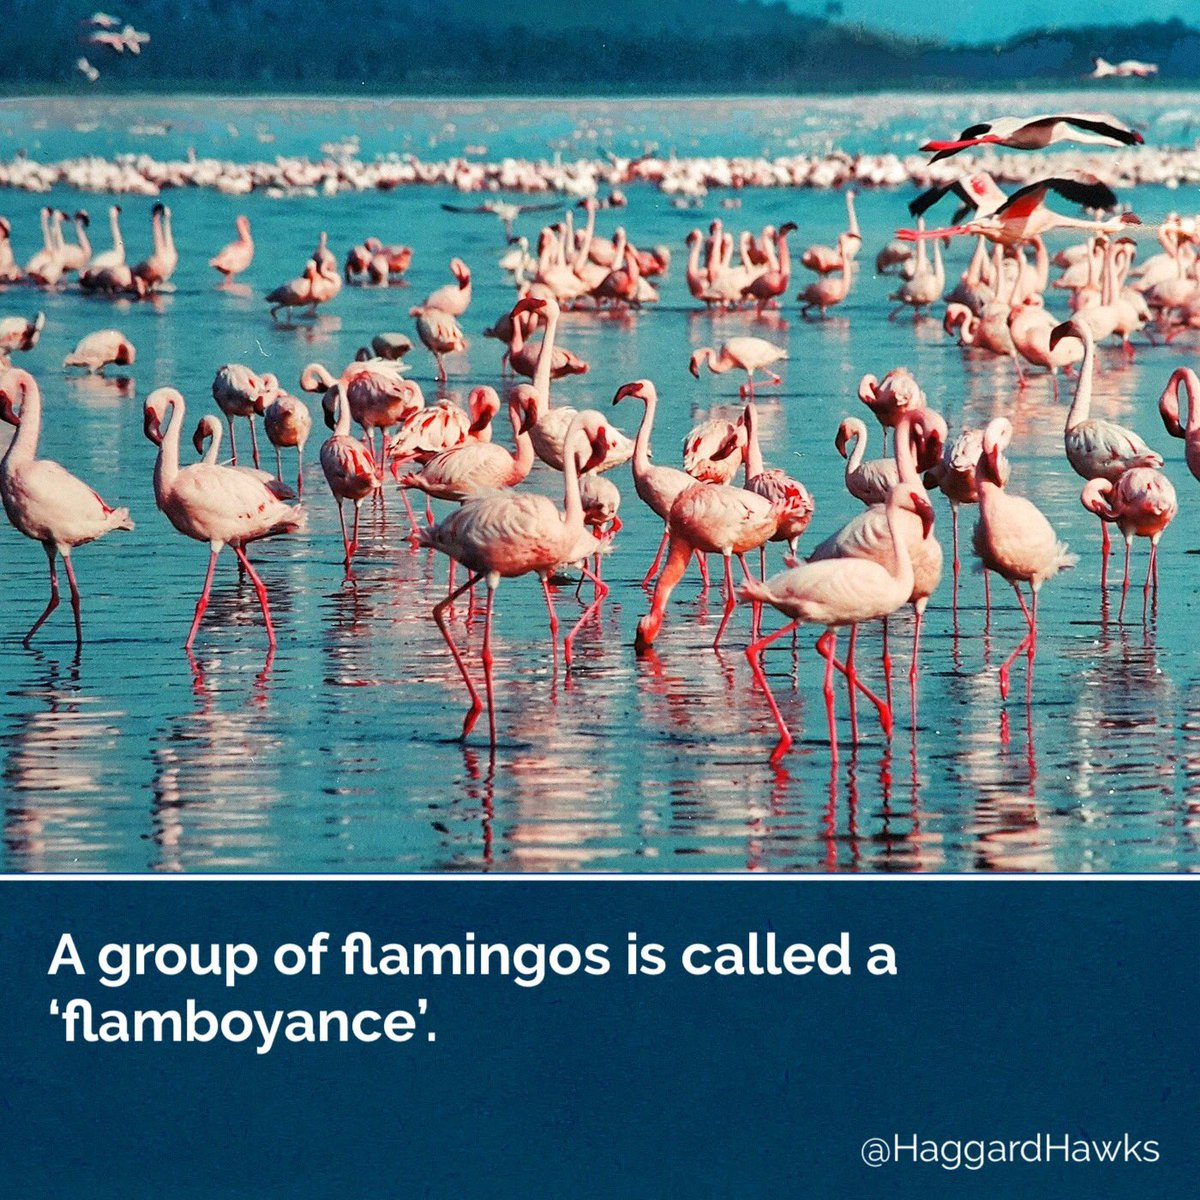 RT @HaggardHawks: A group of flamingos is called a FLAMBOYANCE.   📸 https://t.co/7YbPENDgke https://t.co/hoX32TRJ3W